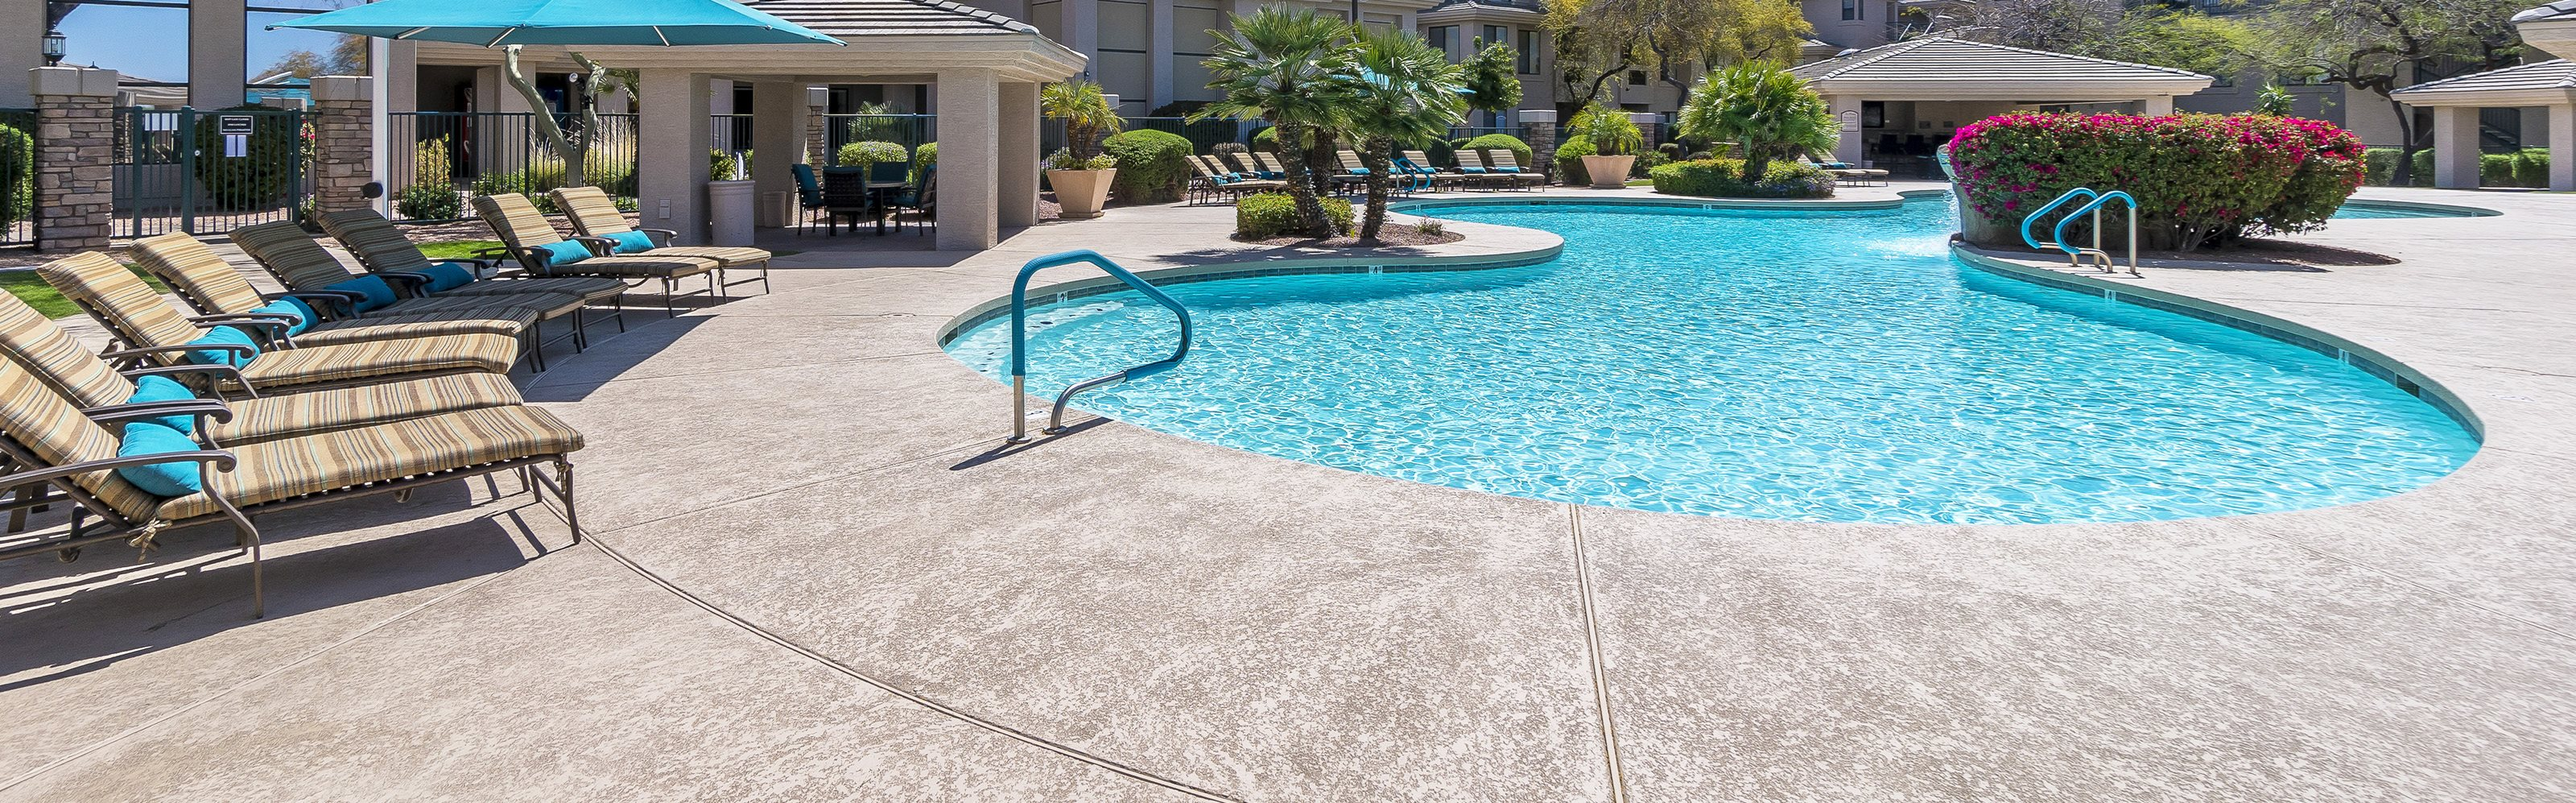 The Paragon at Kierland Apartments pool area